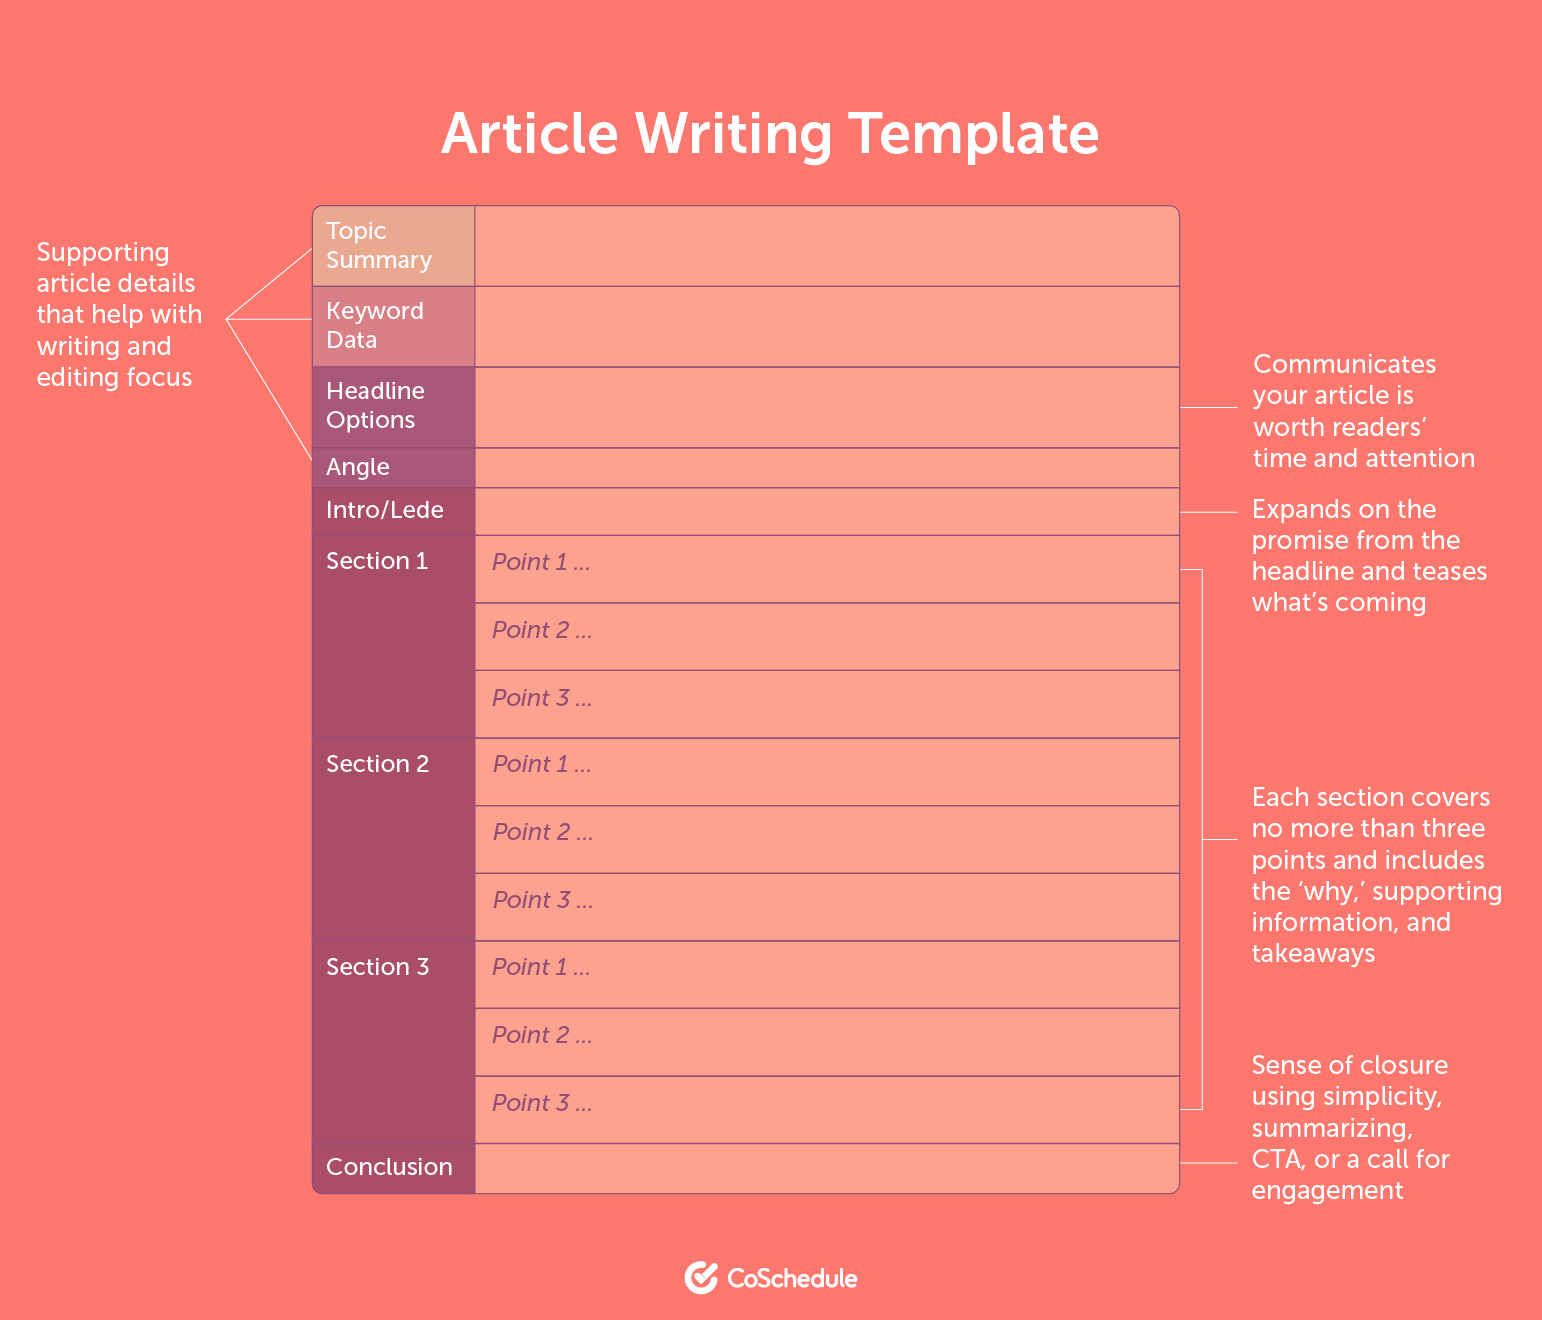 Article Writing Template